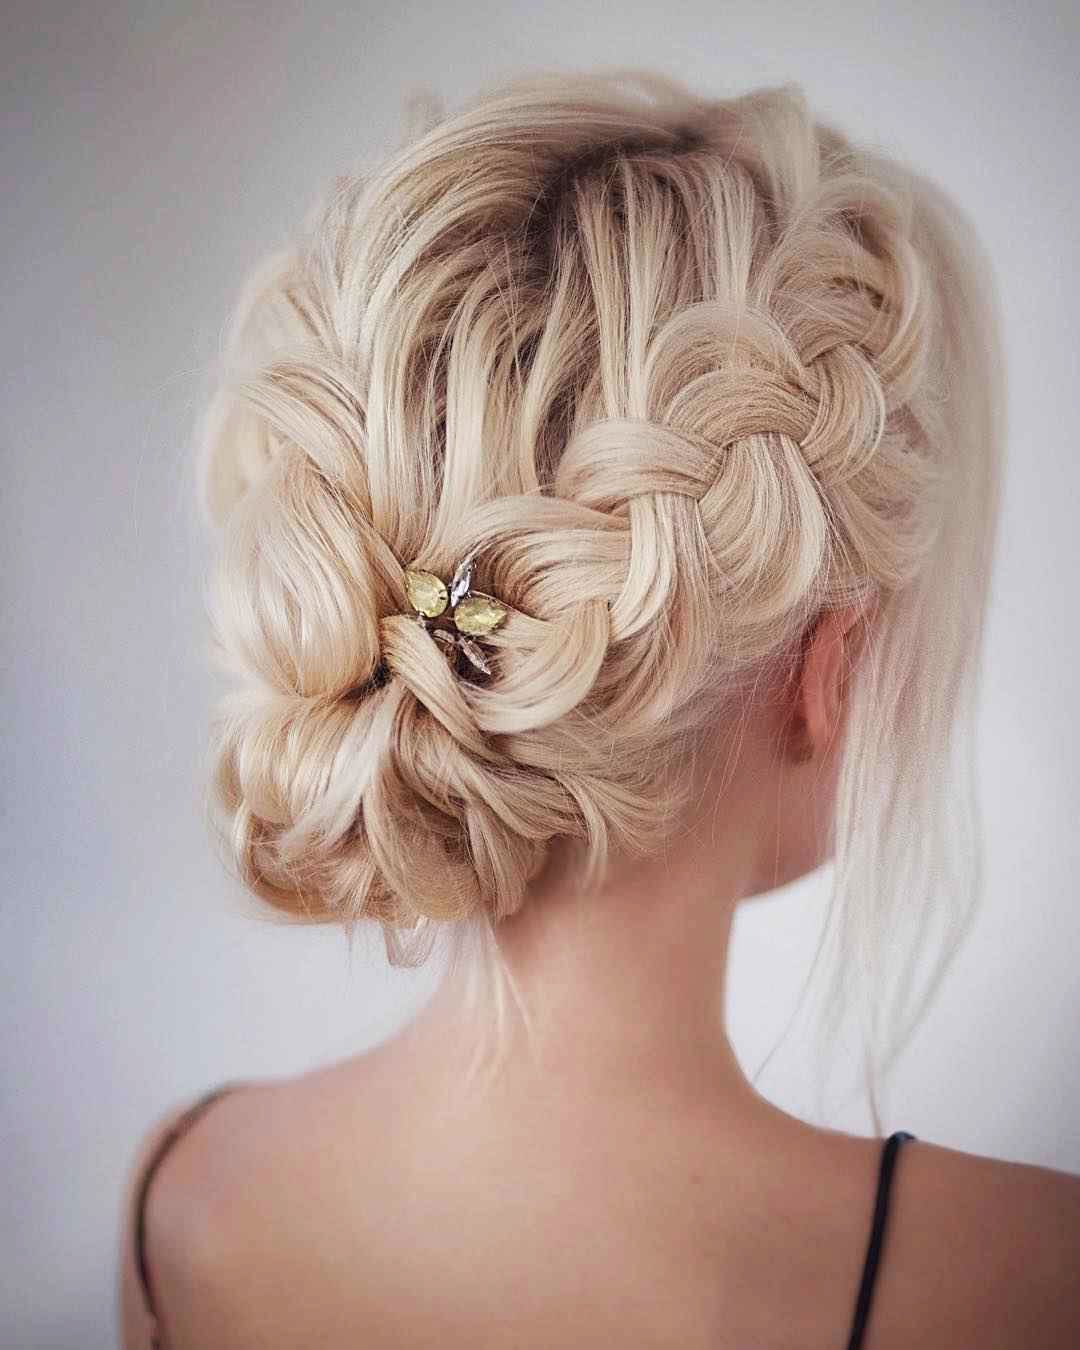 Hairstyles for prom for medium hair 2019-2020 photo 15